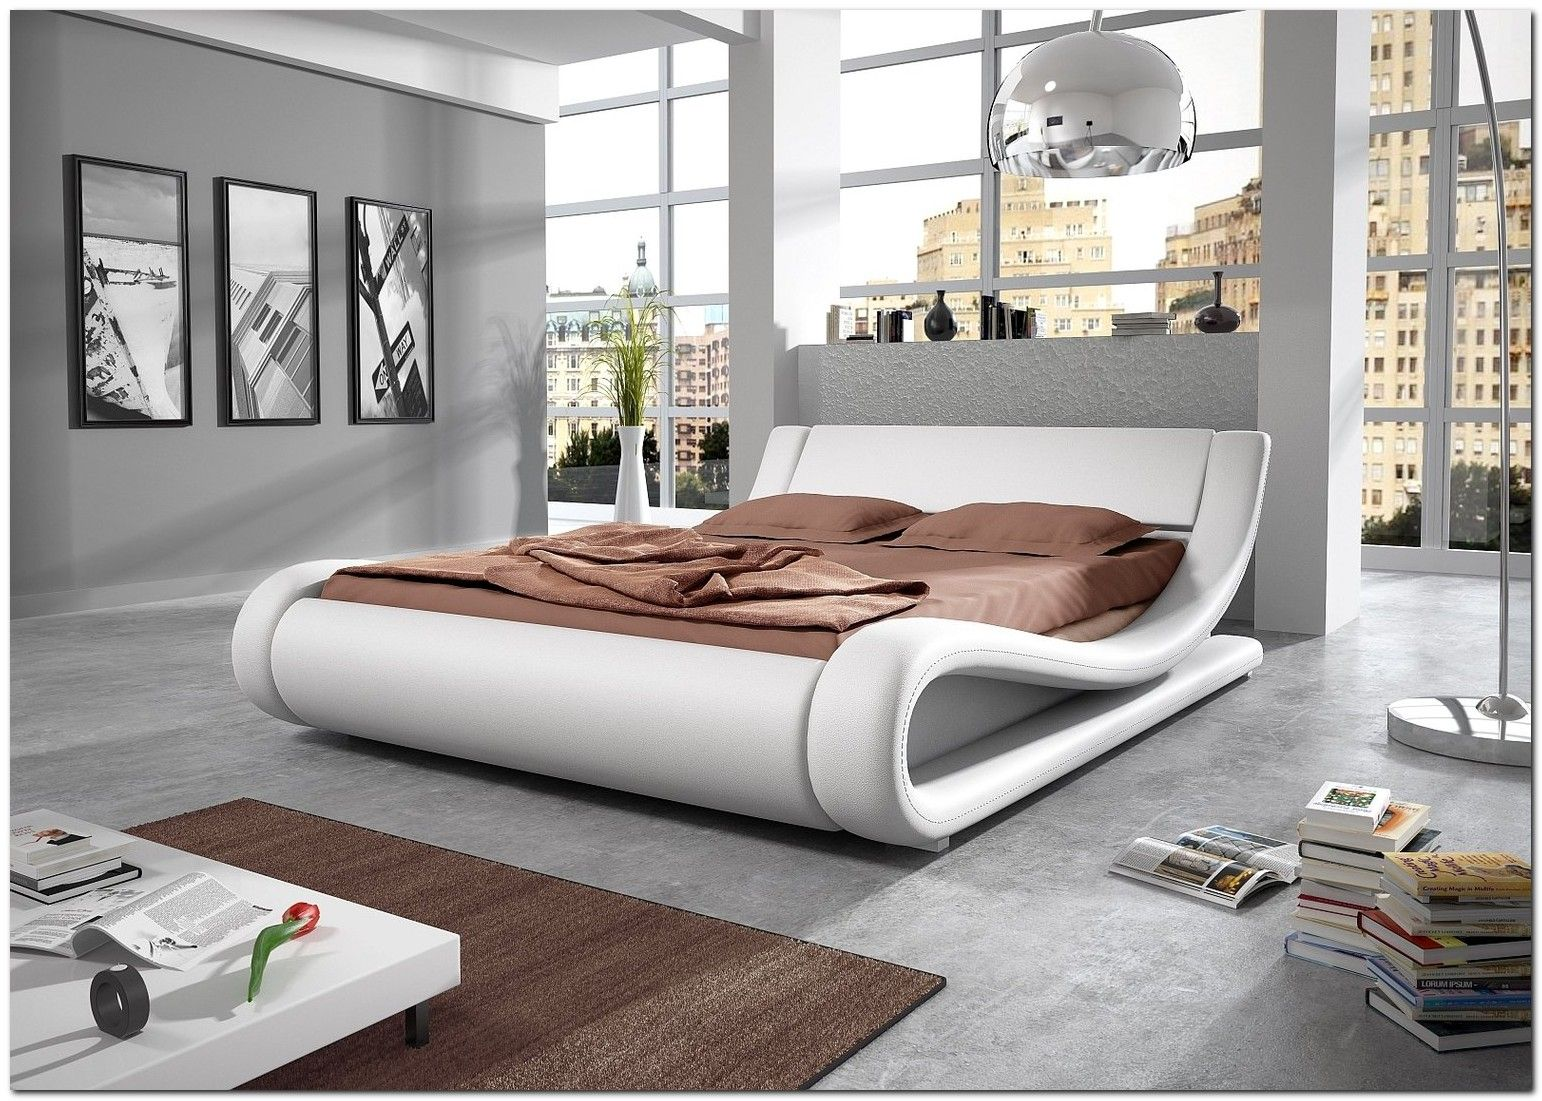 100 ultimate bed you never seen before unique bedroom on unique contemporary bedroom design ideas for more inspiration id=49522